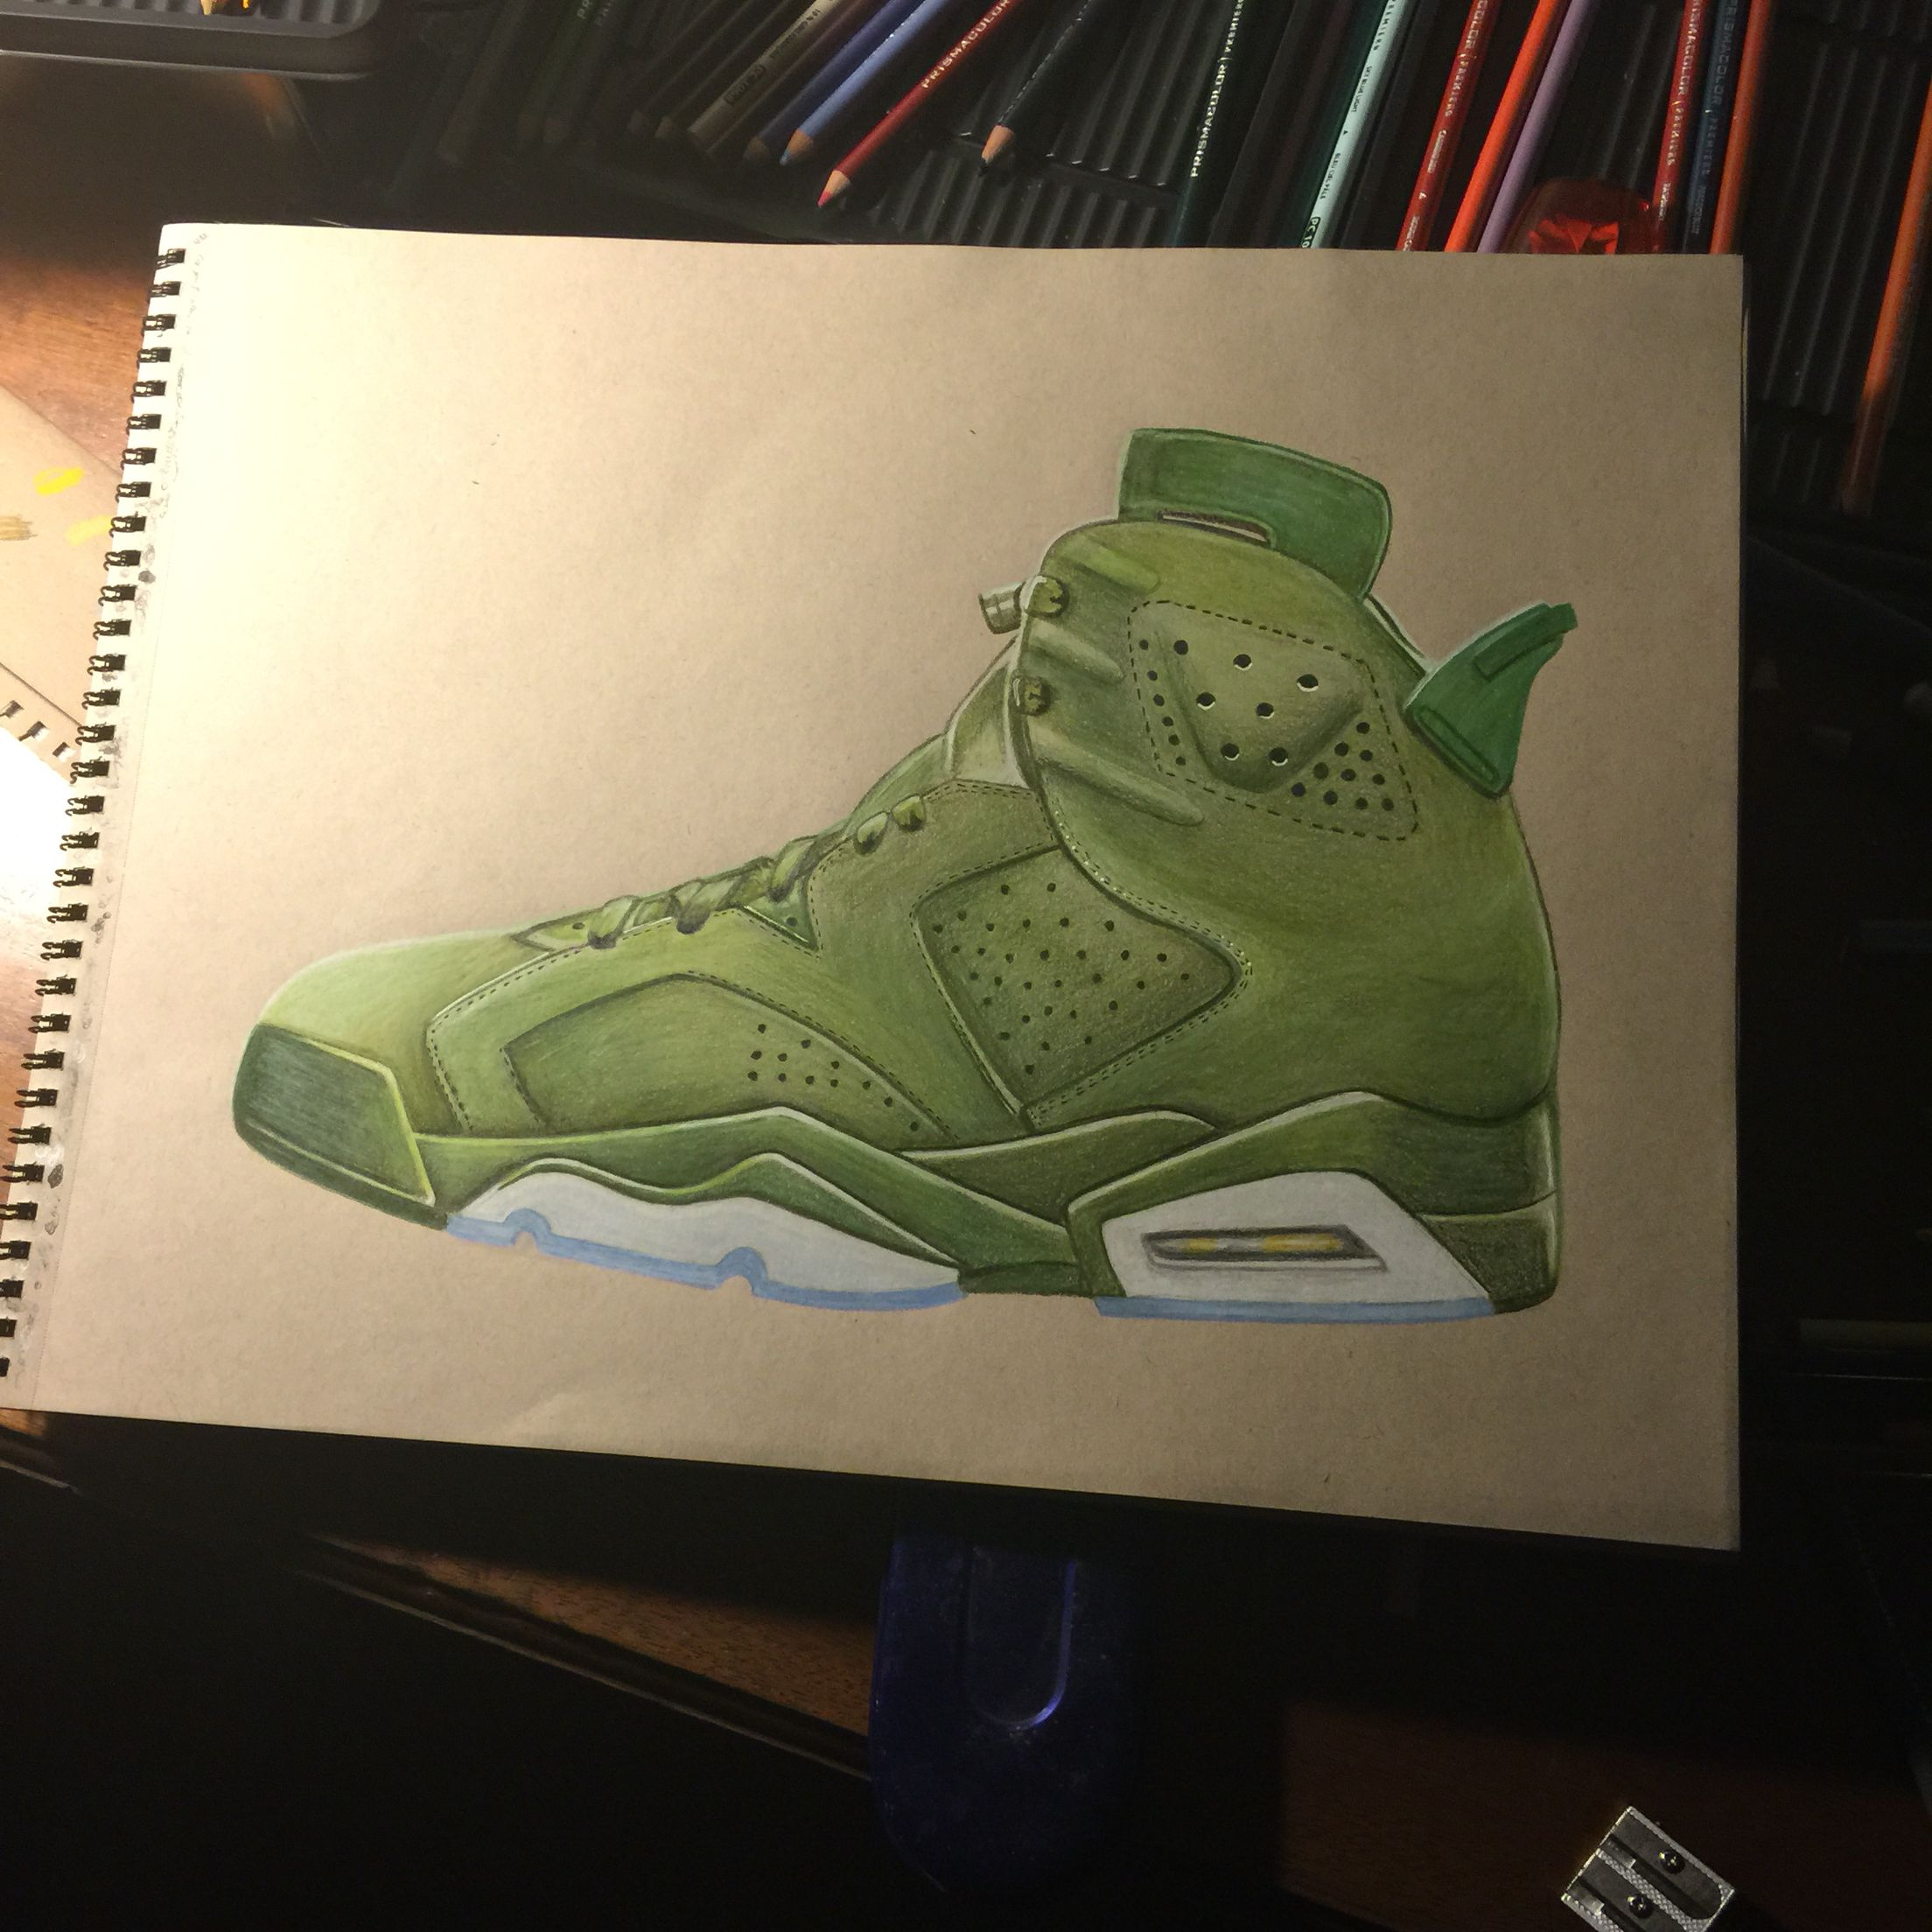 Nike Jordan 6 Macklemore show. Drawing with prisms colored pencil